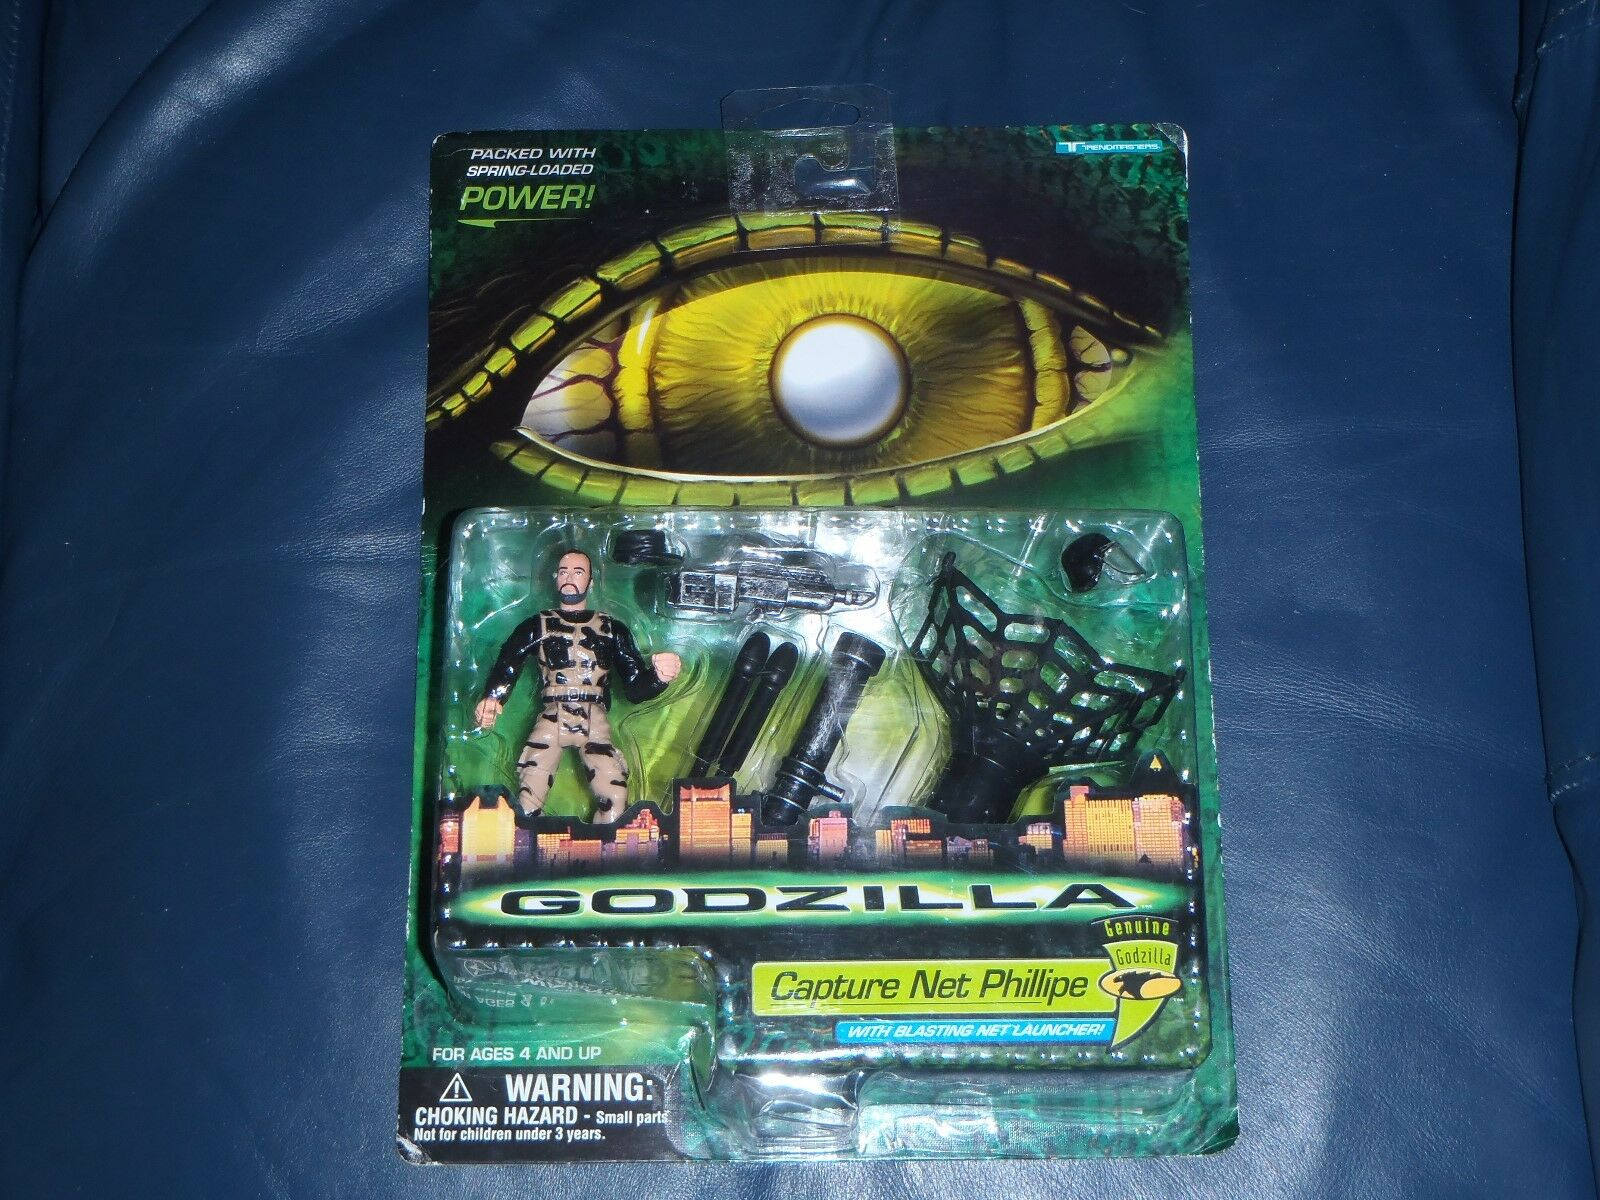 Official GODZILLA Capture Net Phillipe Action Action Action Figure   NEW + SEALED  b12466